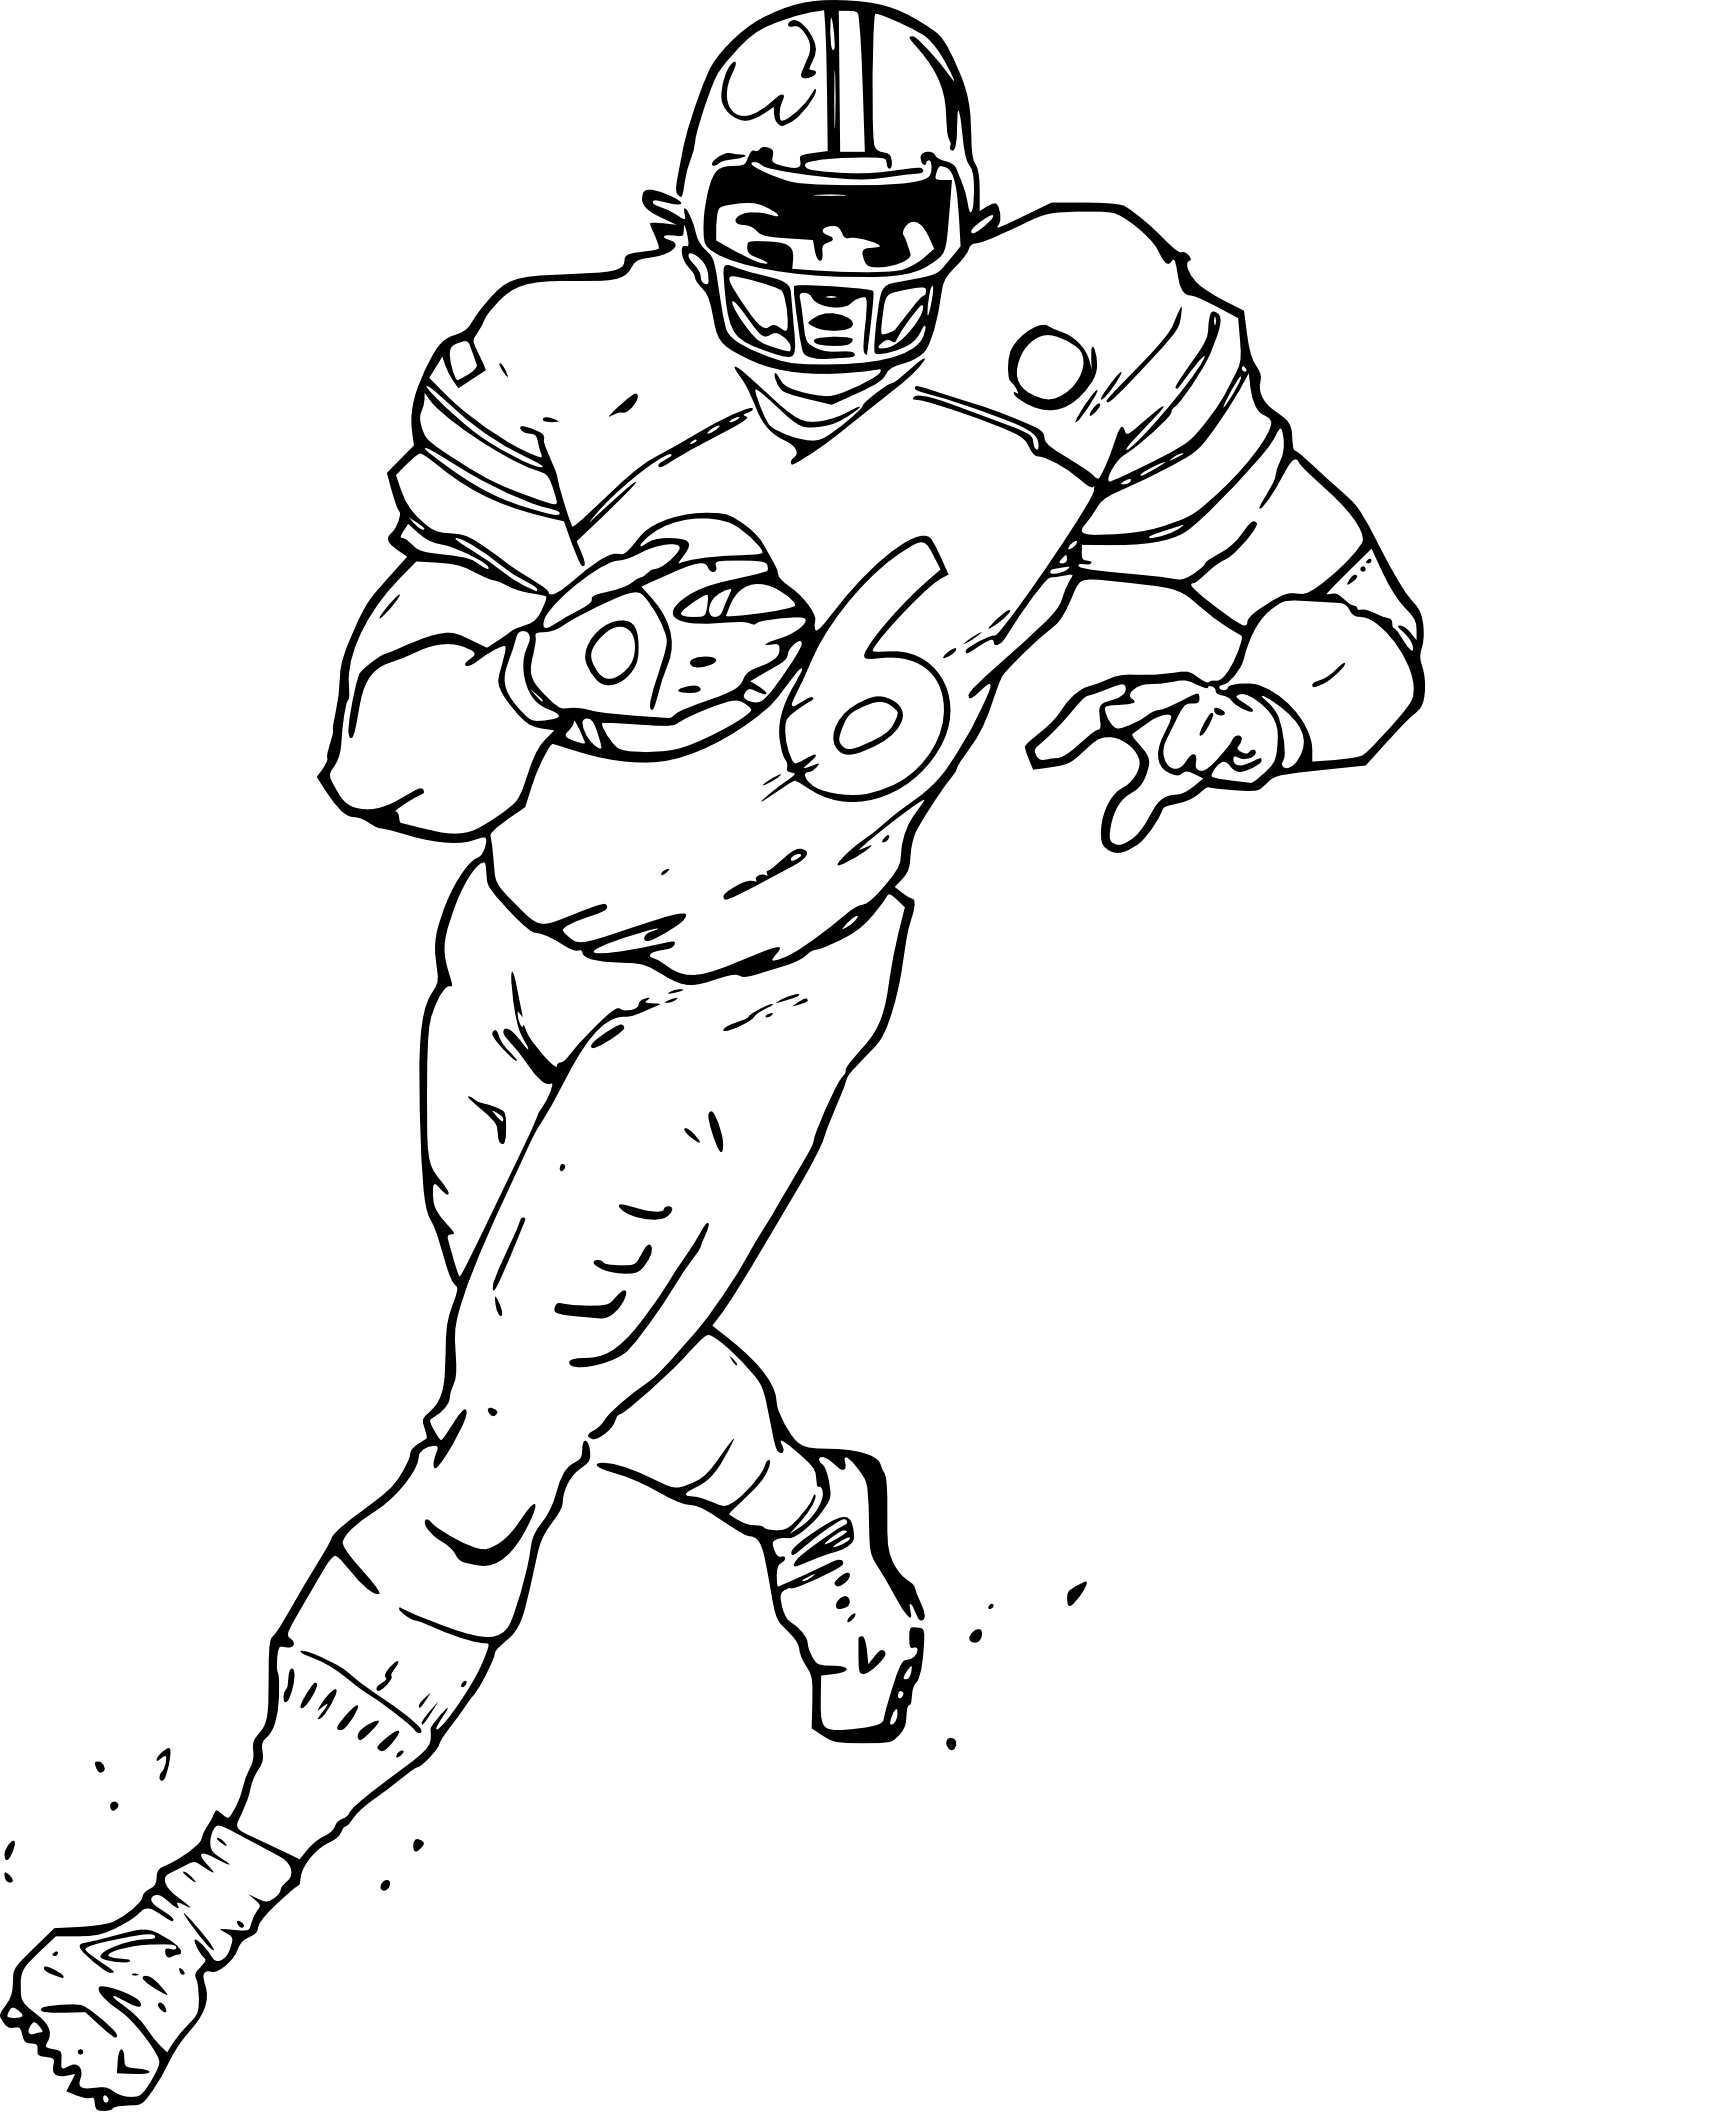 Coloriage foot americain